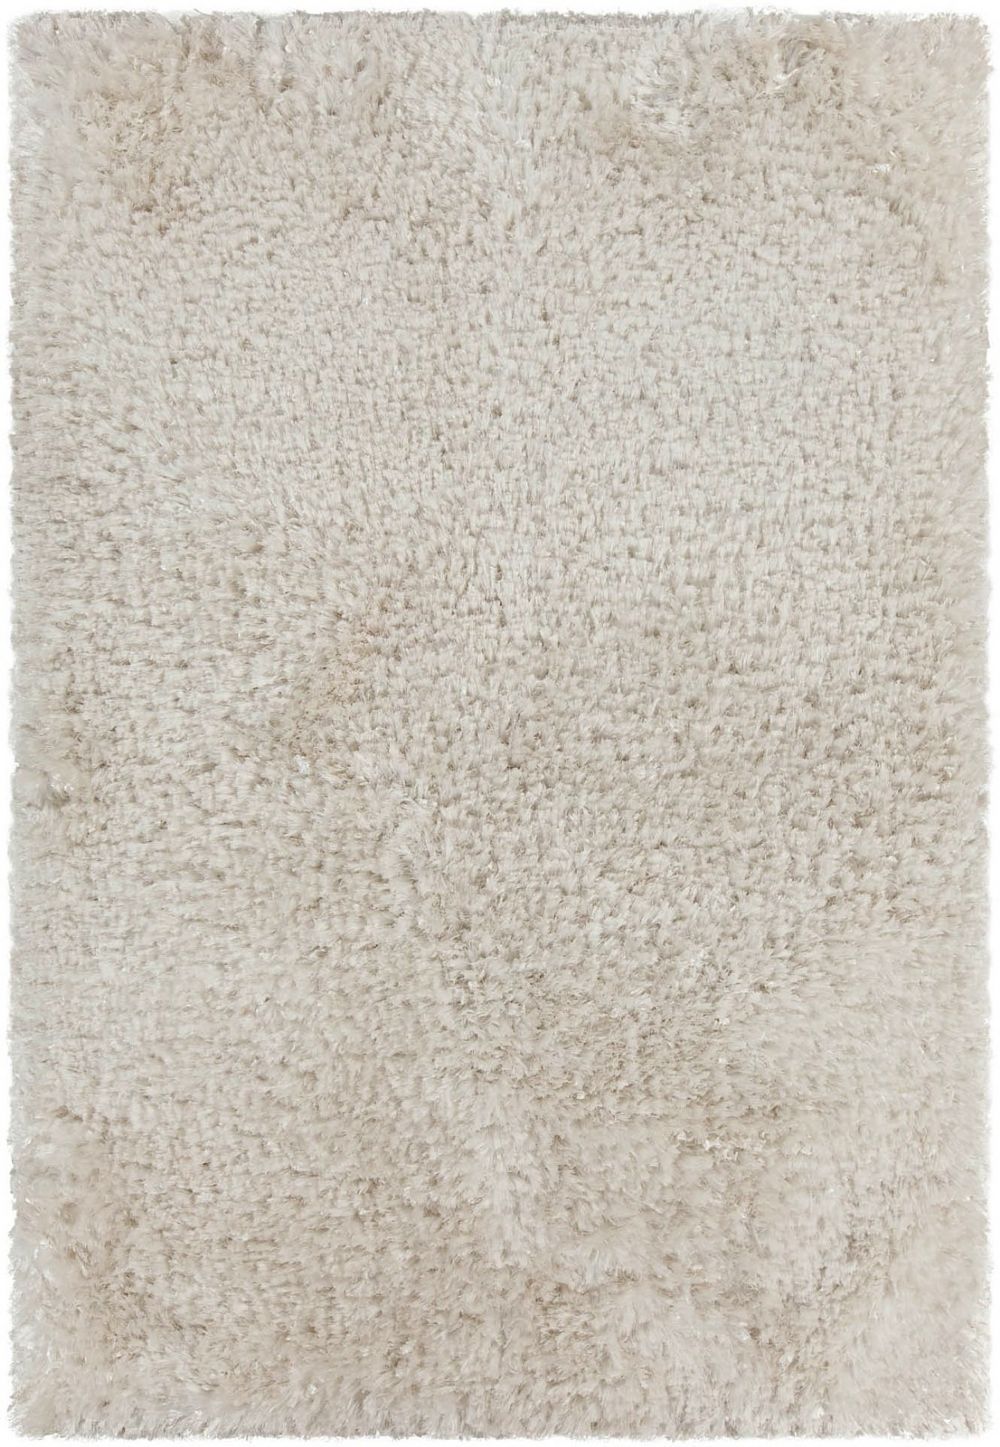 chandra diano shag area rug collection